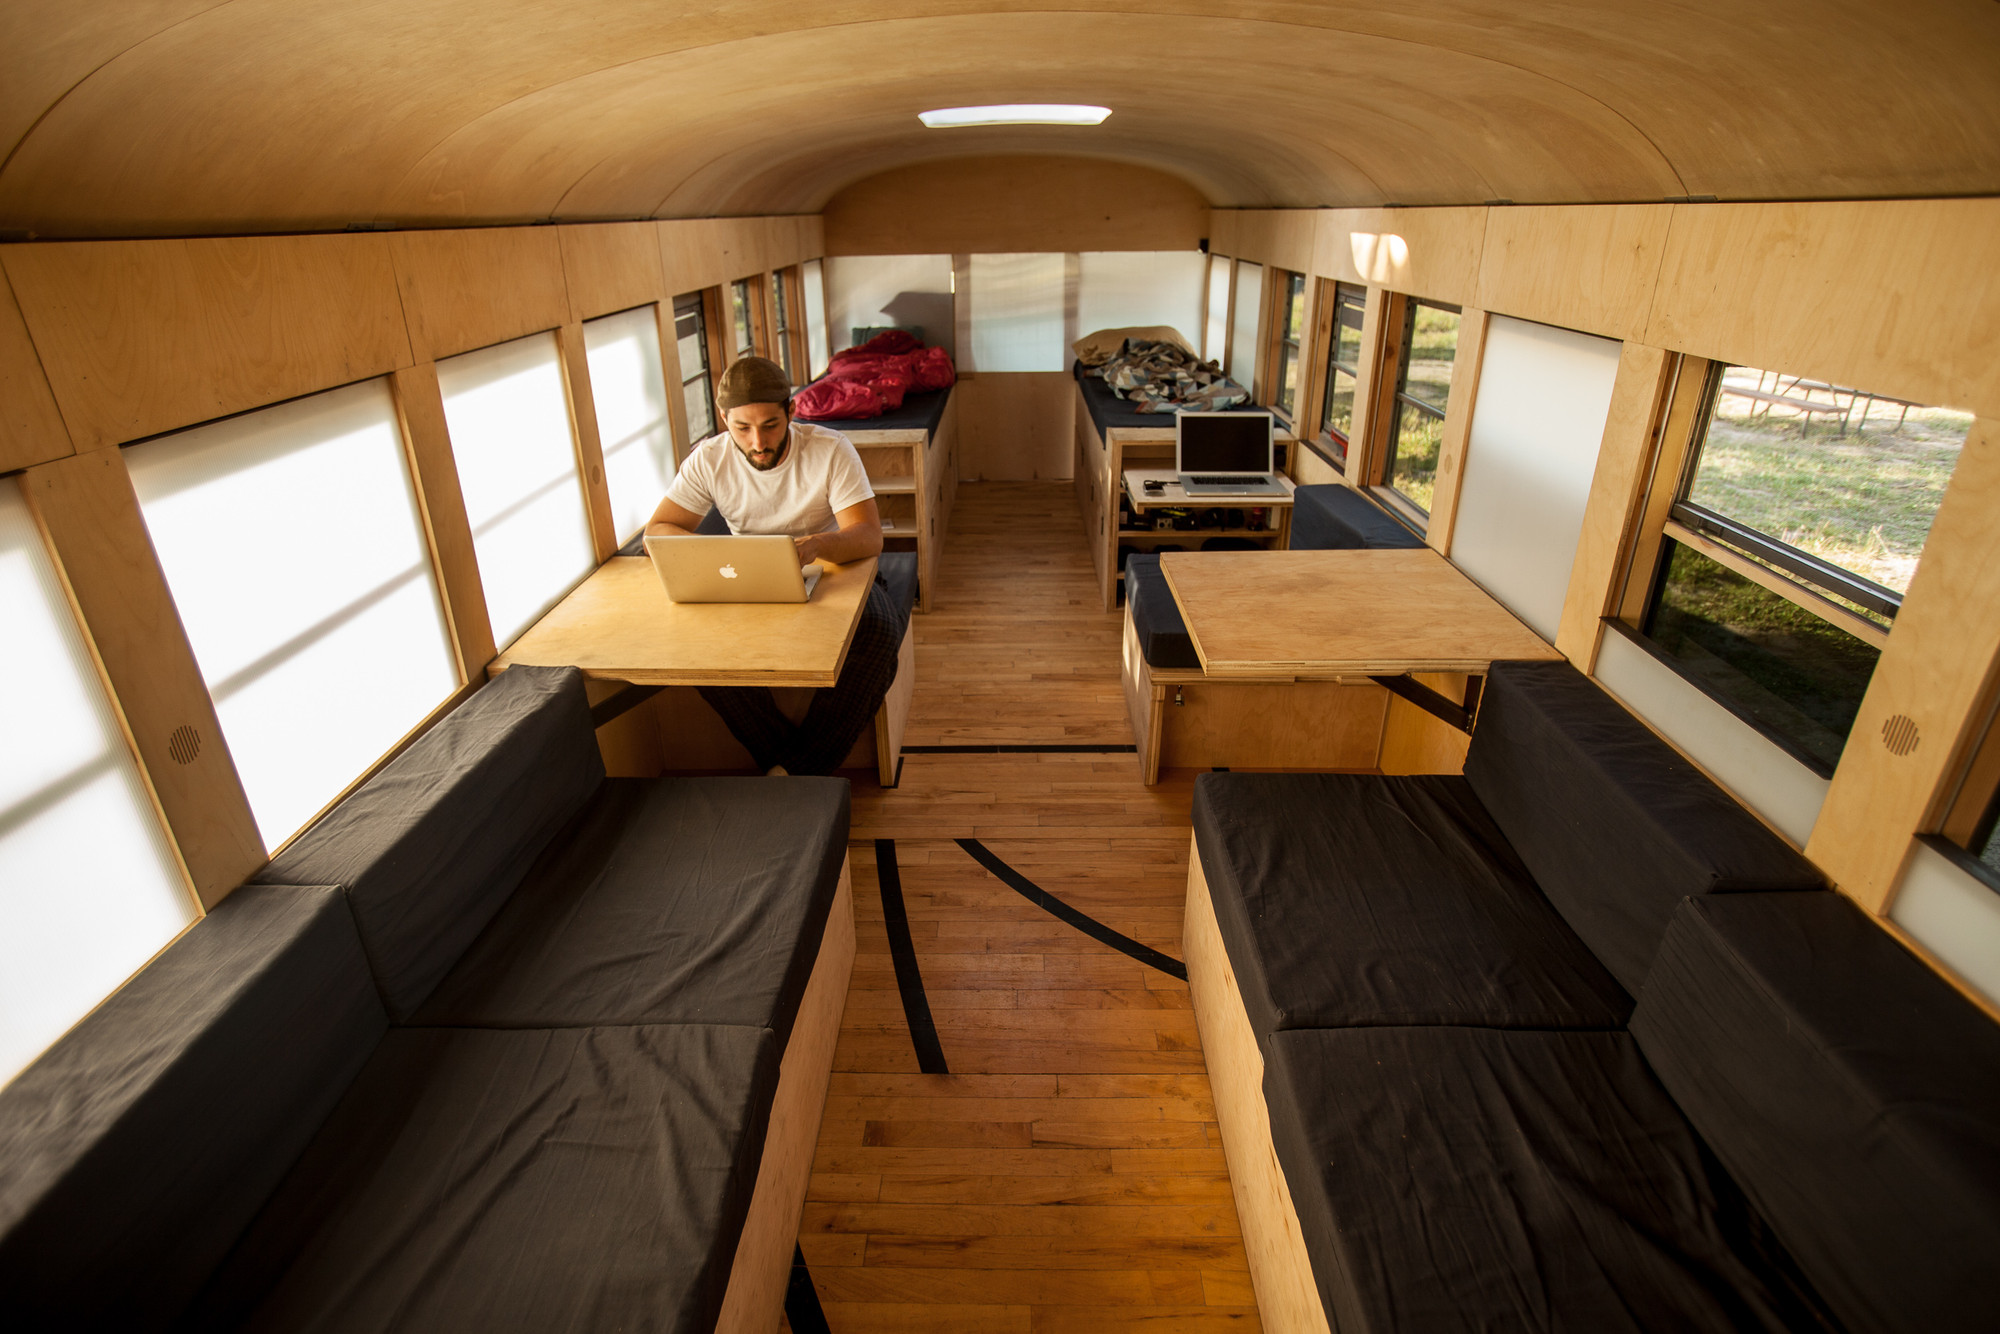 An Old School Bus Converted into a Dwelling